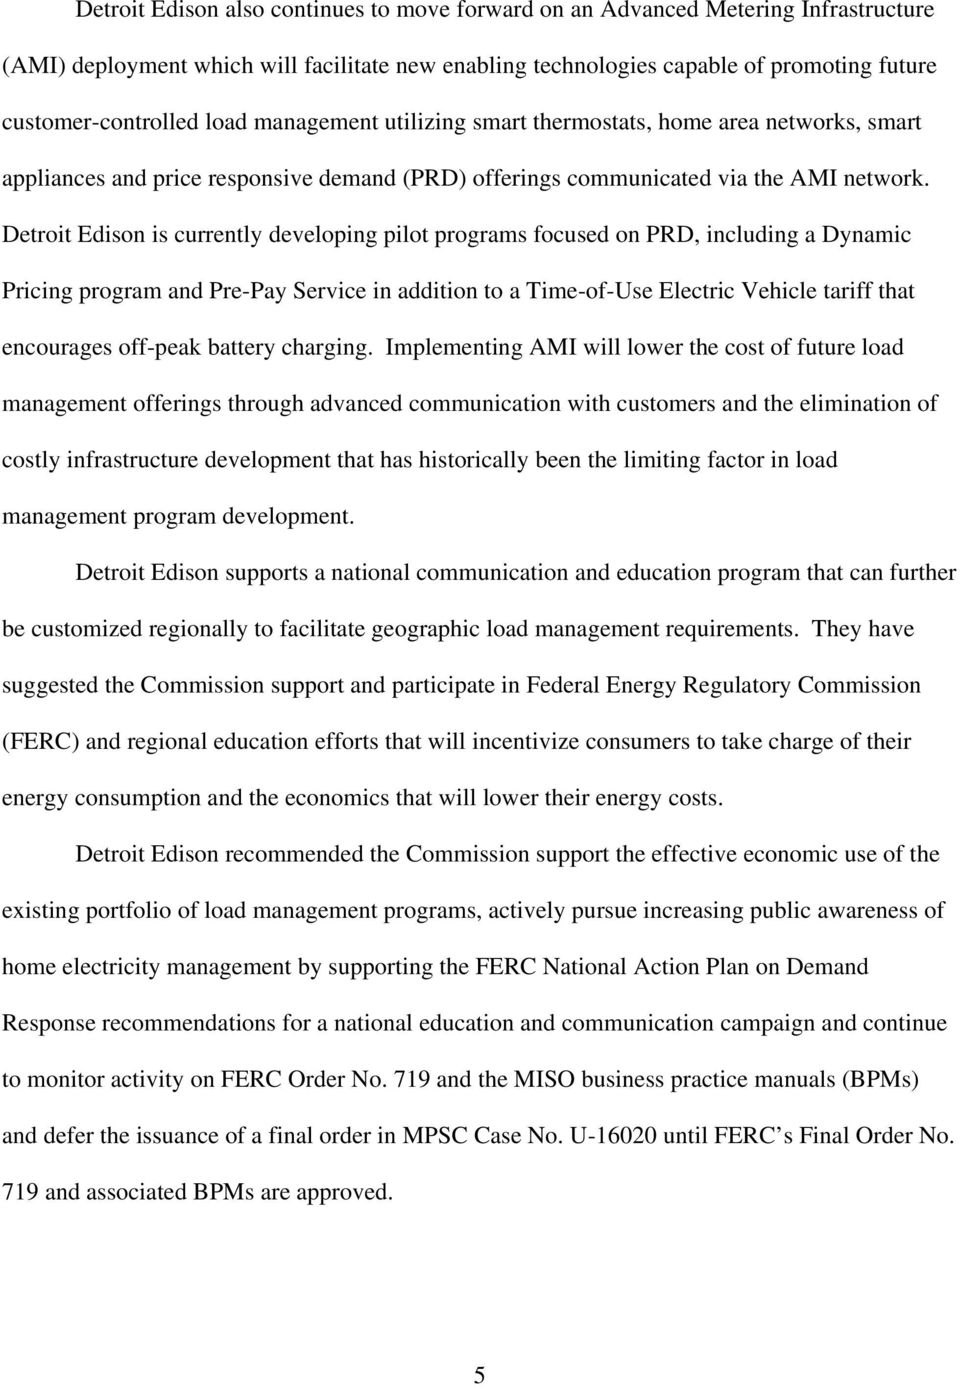 Detroit Edison is currently developing pilot programs focused on PRD, including a Dynamic Pricing program and Pre-Pay Service in addition to a Time-of-Use Electric Vehicle tariff that encourages